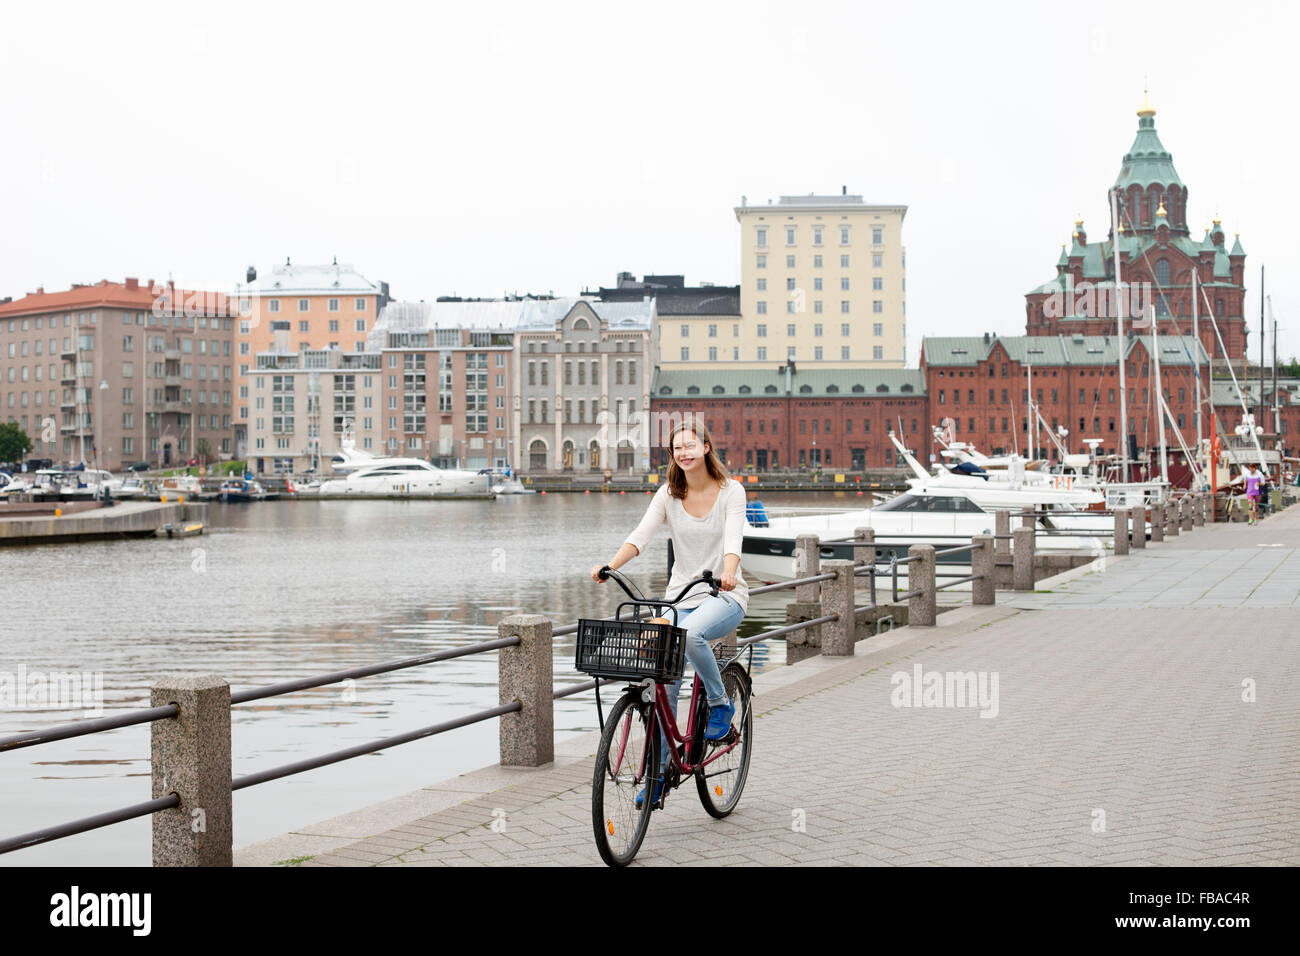 Finland, Uusimaa, Helsinki, Kruunuhaka, Young woman riding bicycle in city Stock Photo